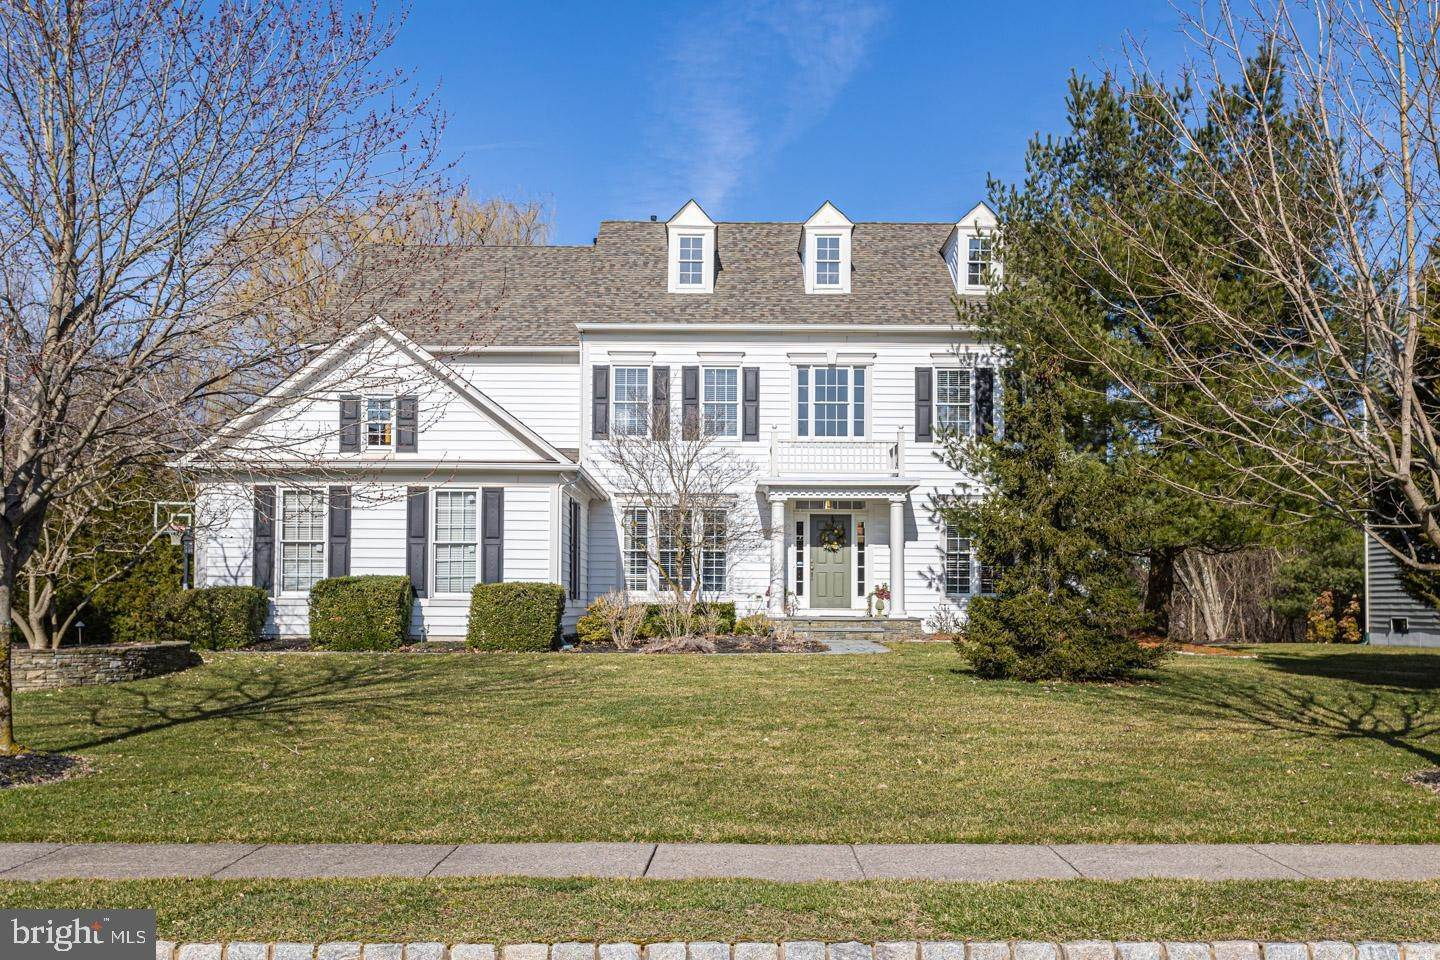 Property for Sale at 36 TERRELL Drive Washington Crossing, Pennsylvania 18977 United States